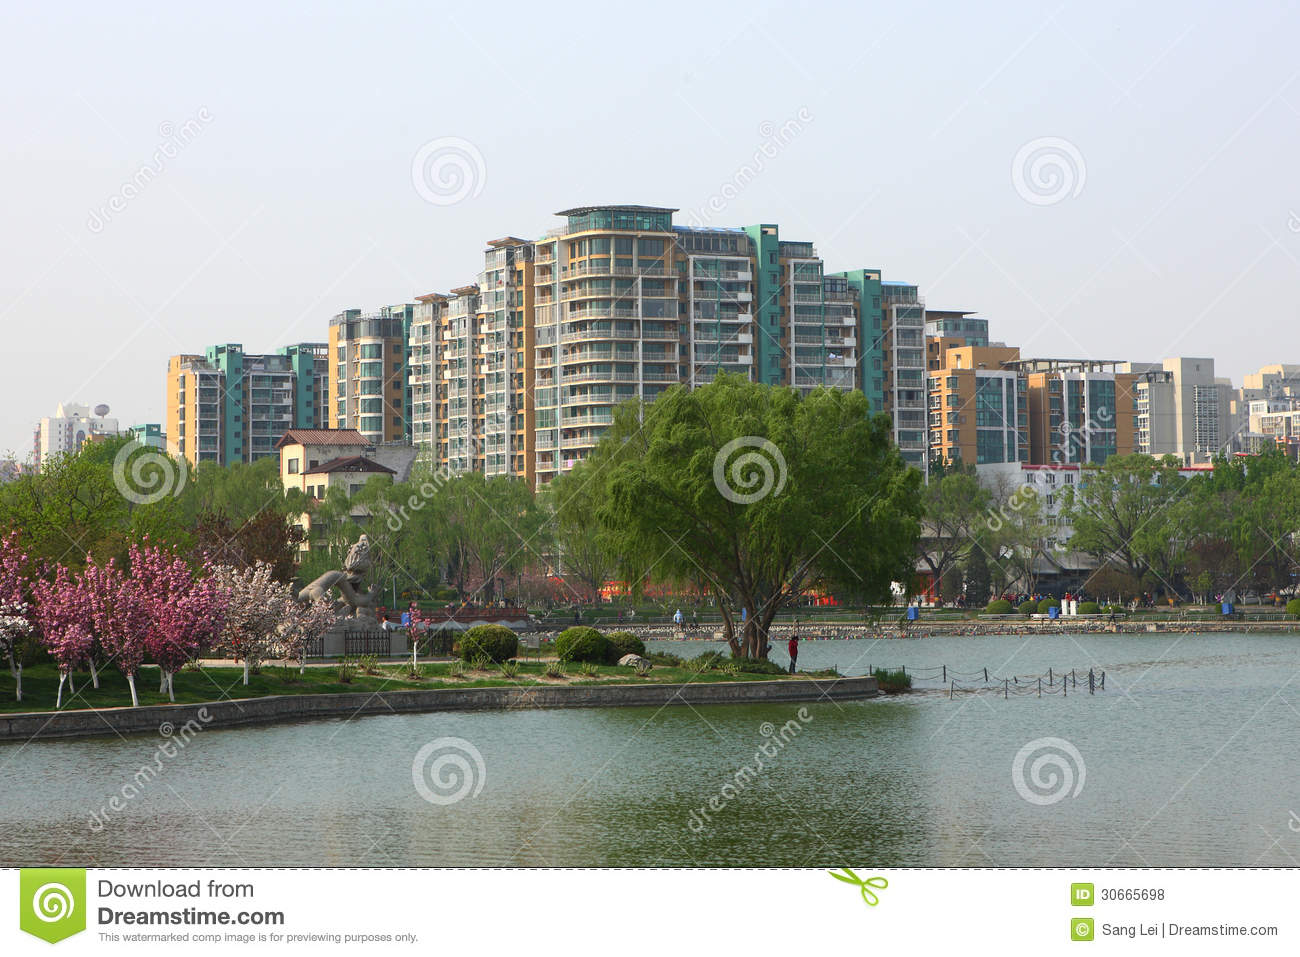 Lake and buildings